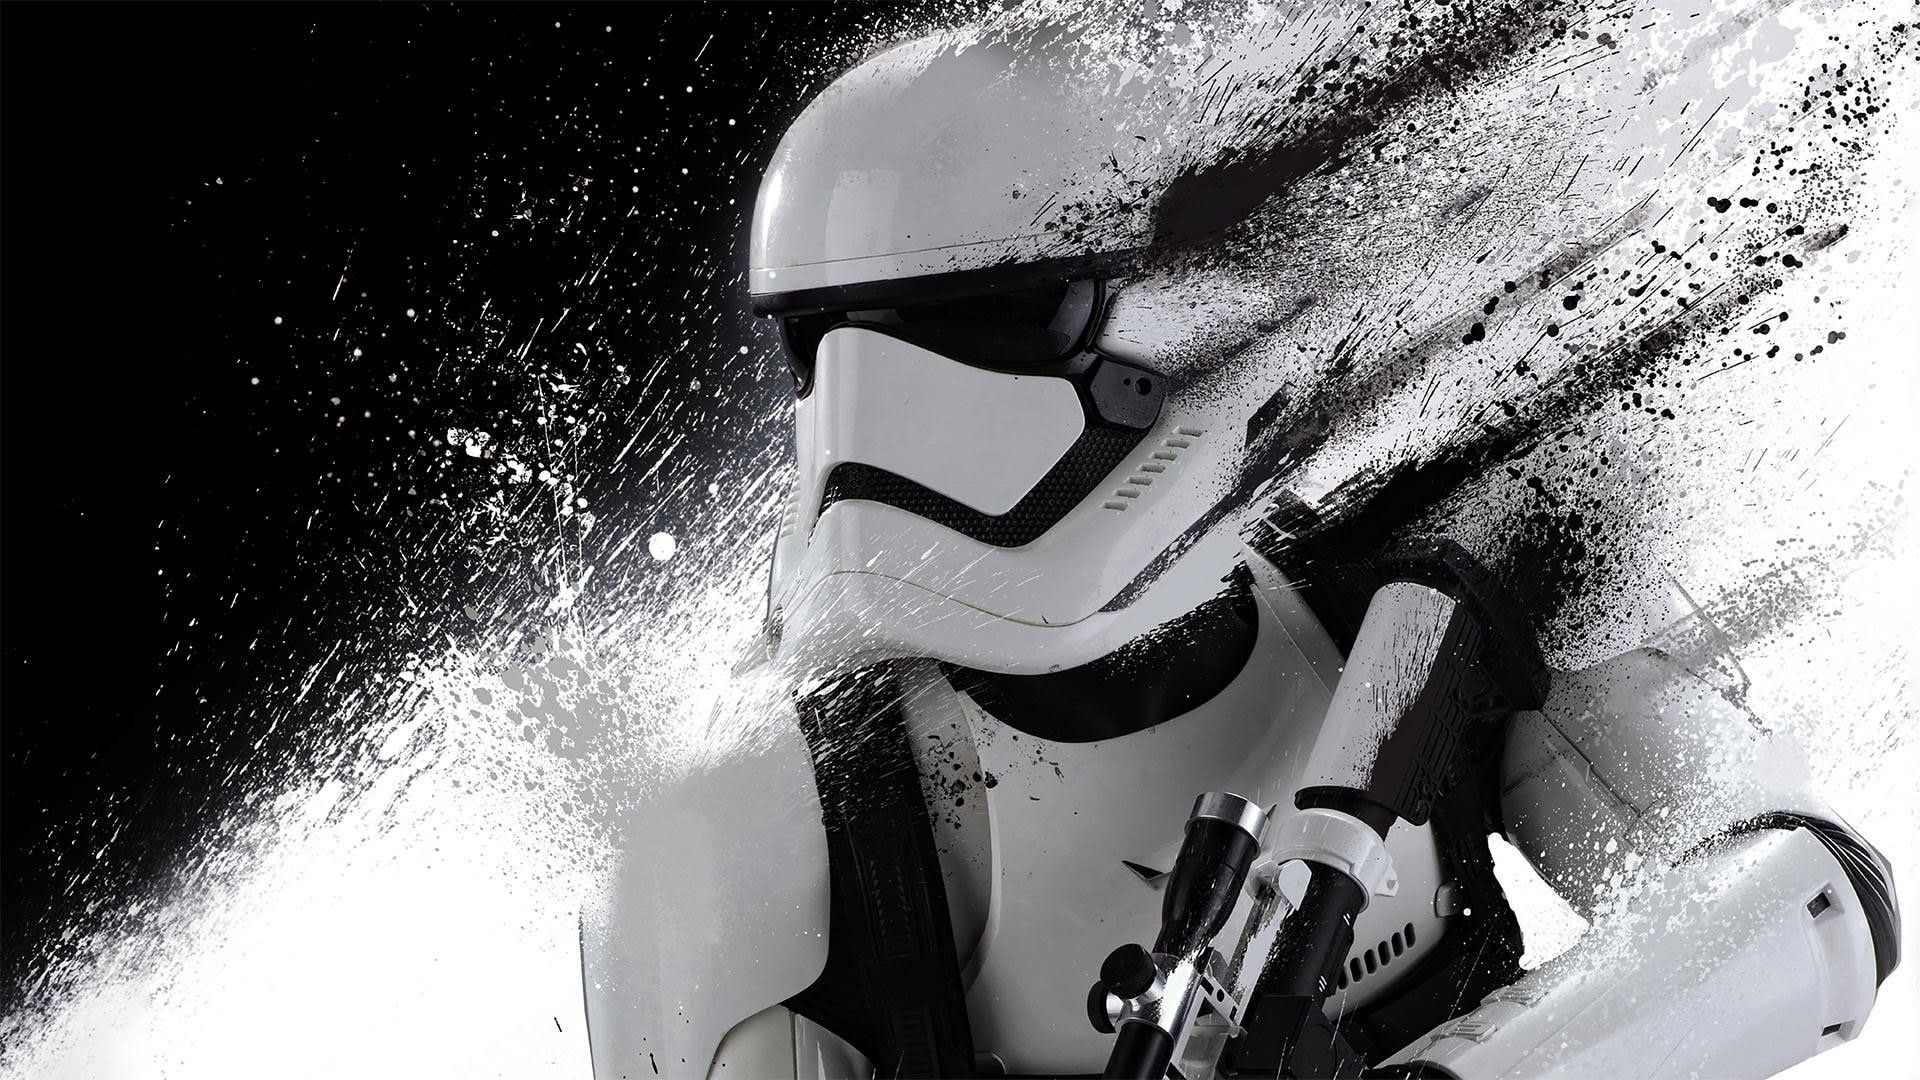 Star Wars Storm Trooper Wallpaper